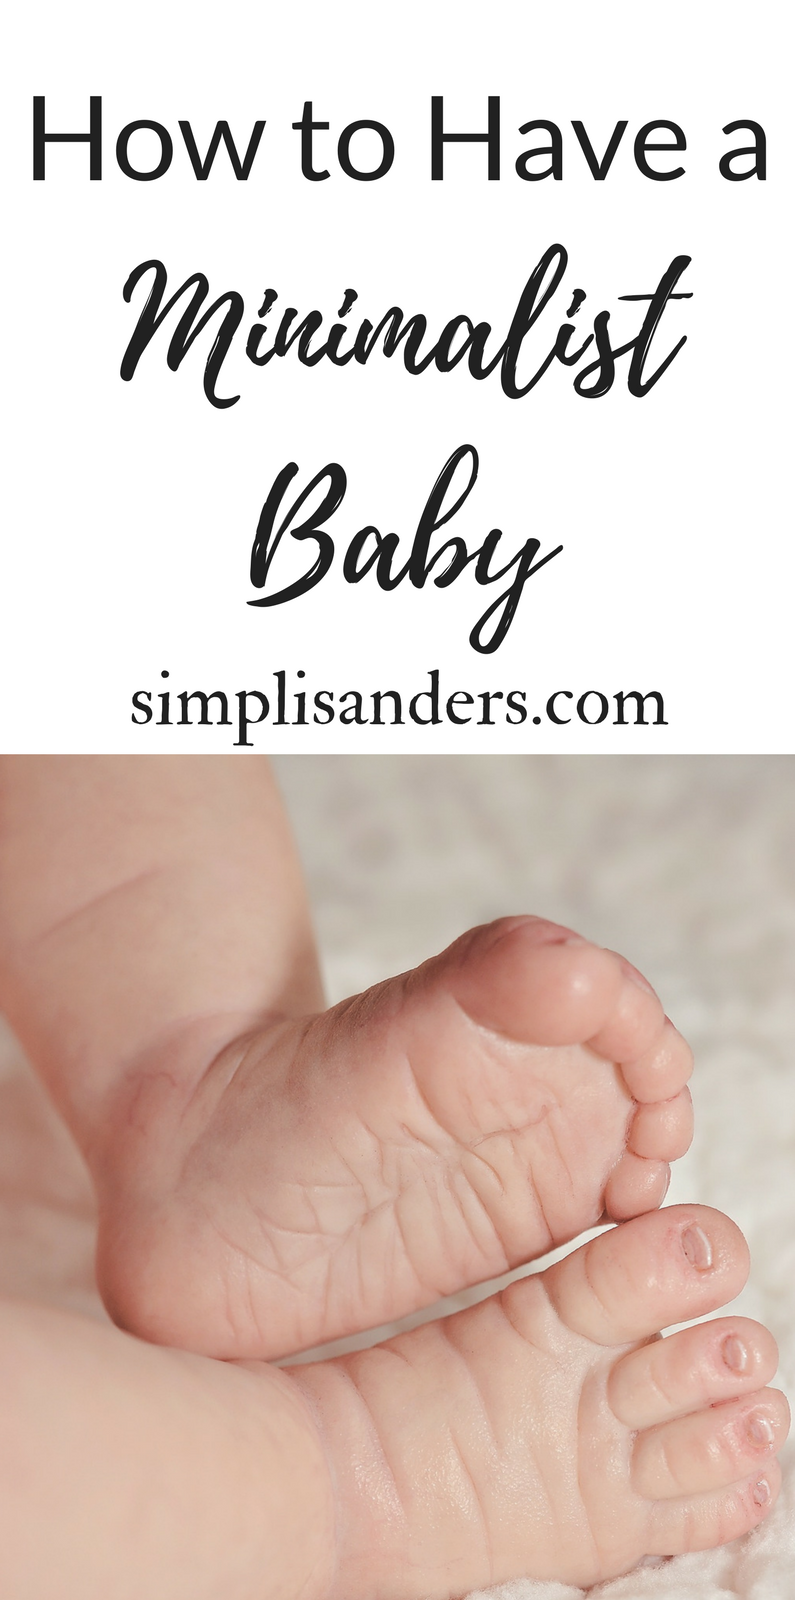 So many registries filled with things you don't really need or high end stuff you can't afford. This is a modernized minimalist list of baby essentials that today's parents need for their babies but with a minimalist approach. #haveaminimalistbaby #minimalbabyessentials #minimalistbabyregistry